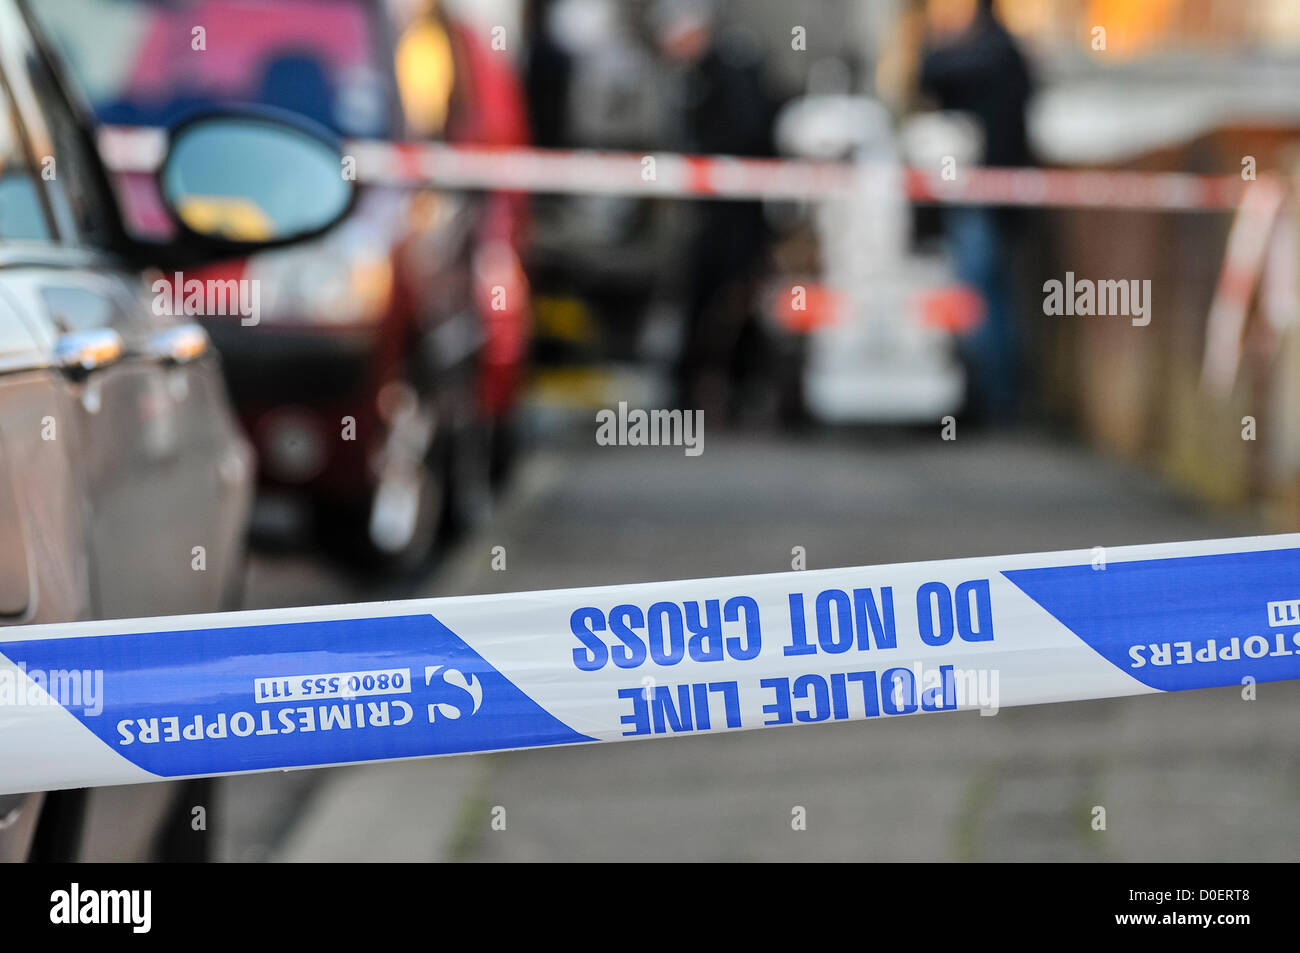 23rd November 2012, Belfast, Northern Ireland.  A suspicious device was found during a planned search of a house - Stock Image